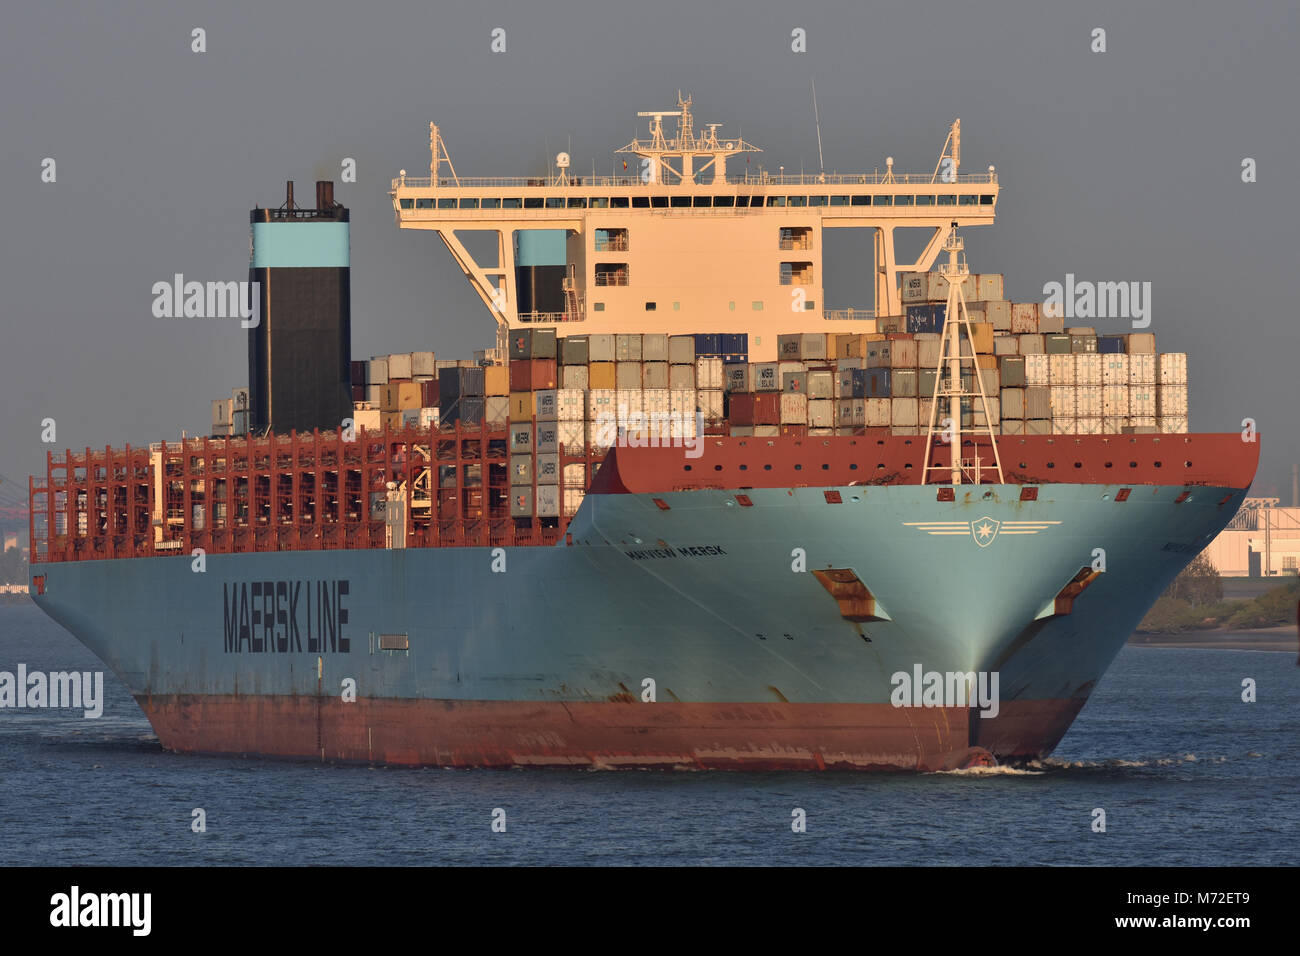 Trilple-E Containervessel Mayview Maersk outbound from Hamburg - Stock Image